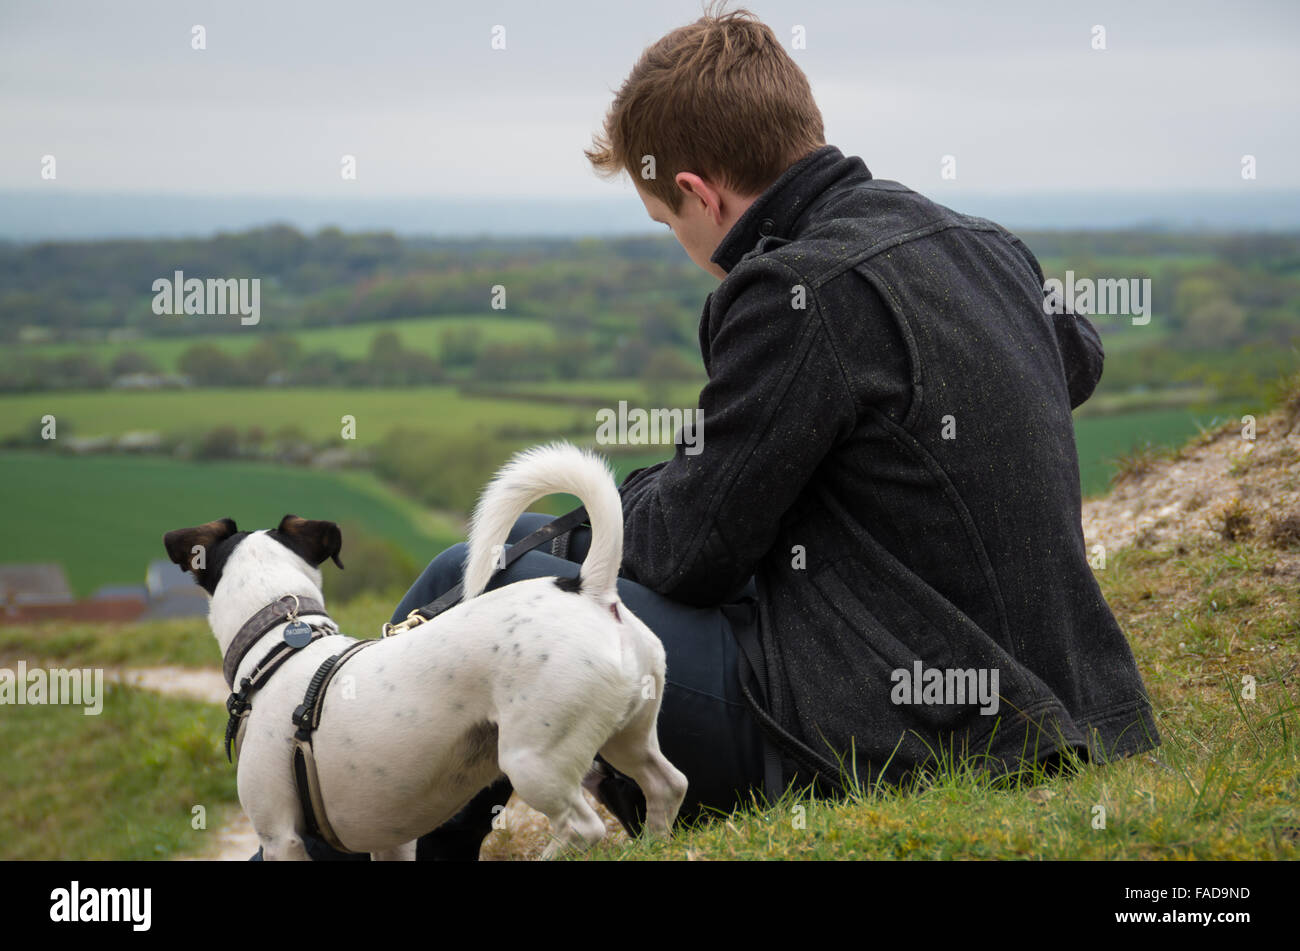 Male in late 20's with his Jack Russell Terrier sitting down overlooking the hills of the West Sussex countryside - Stock Image